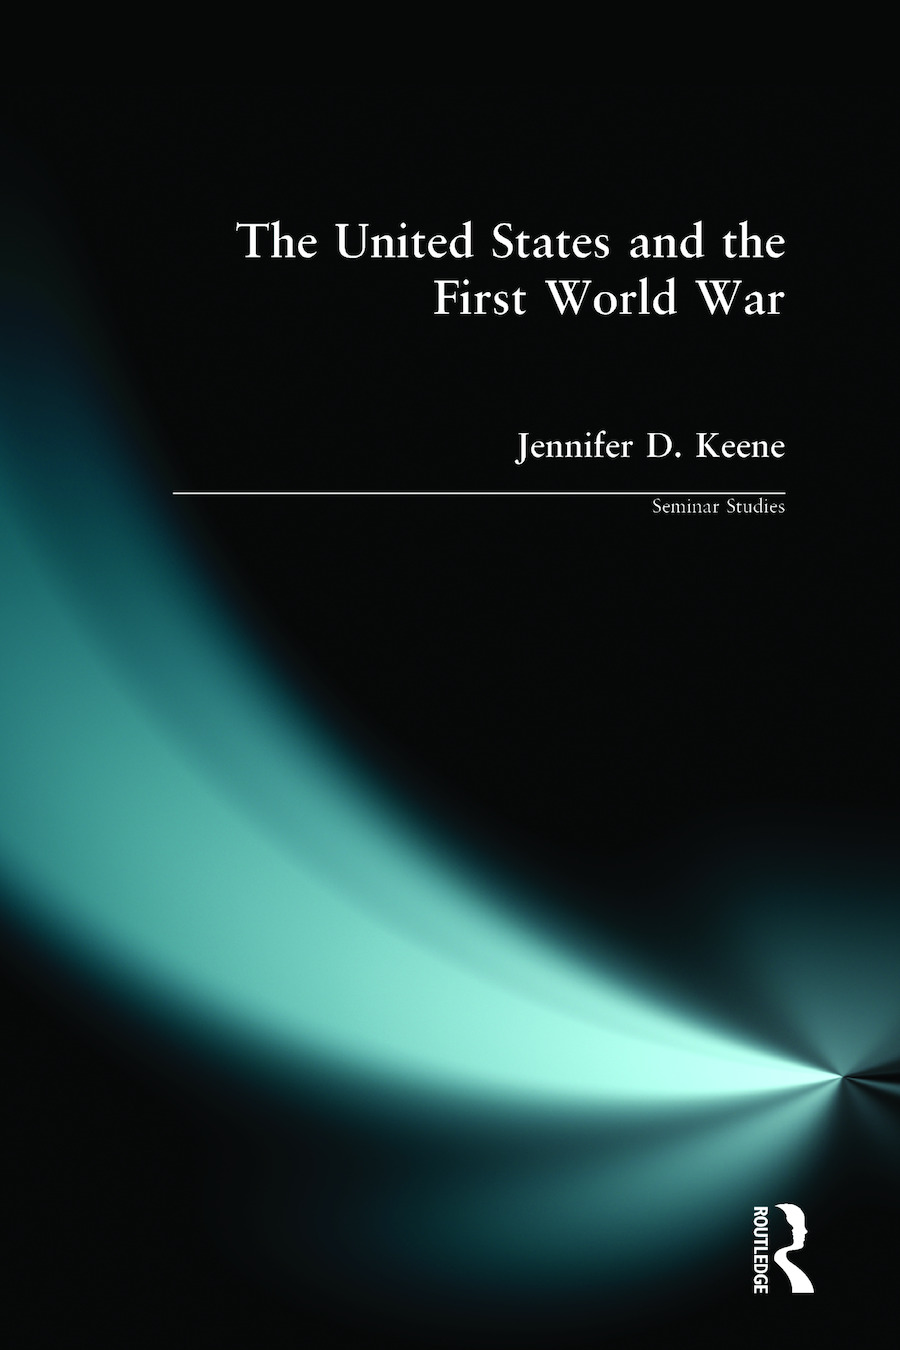 The United States and the First World War